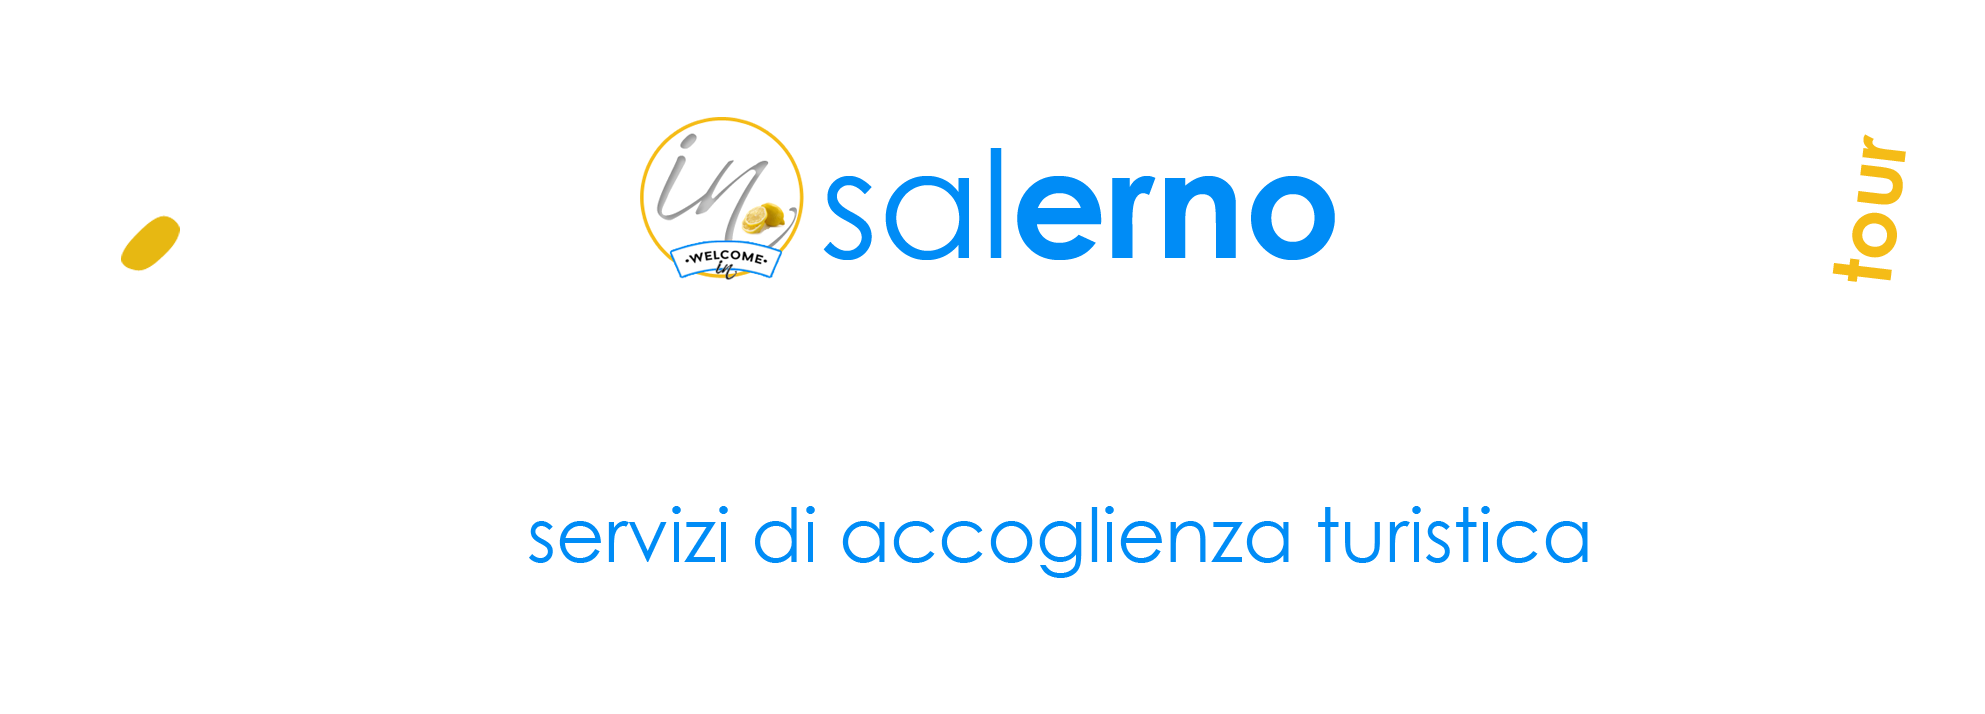 Salerno Incoming Tour and Services